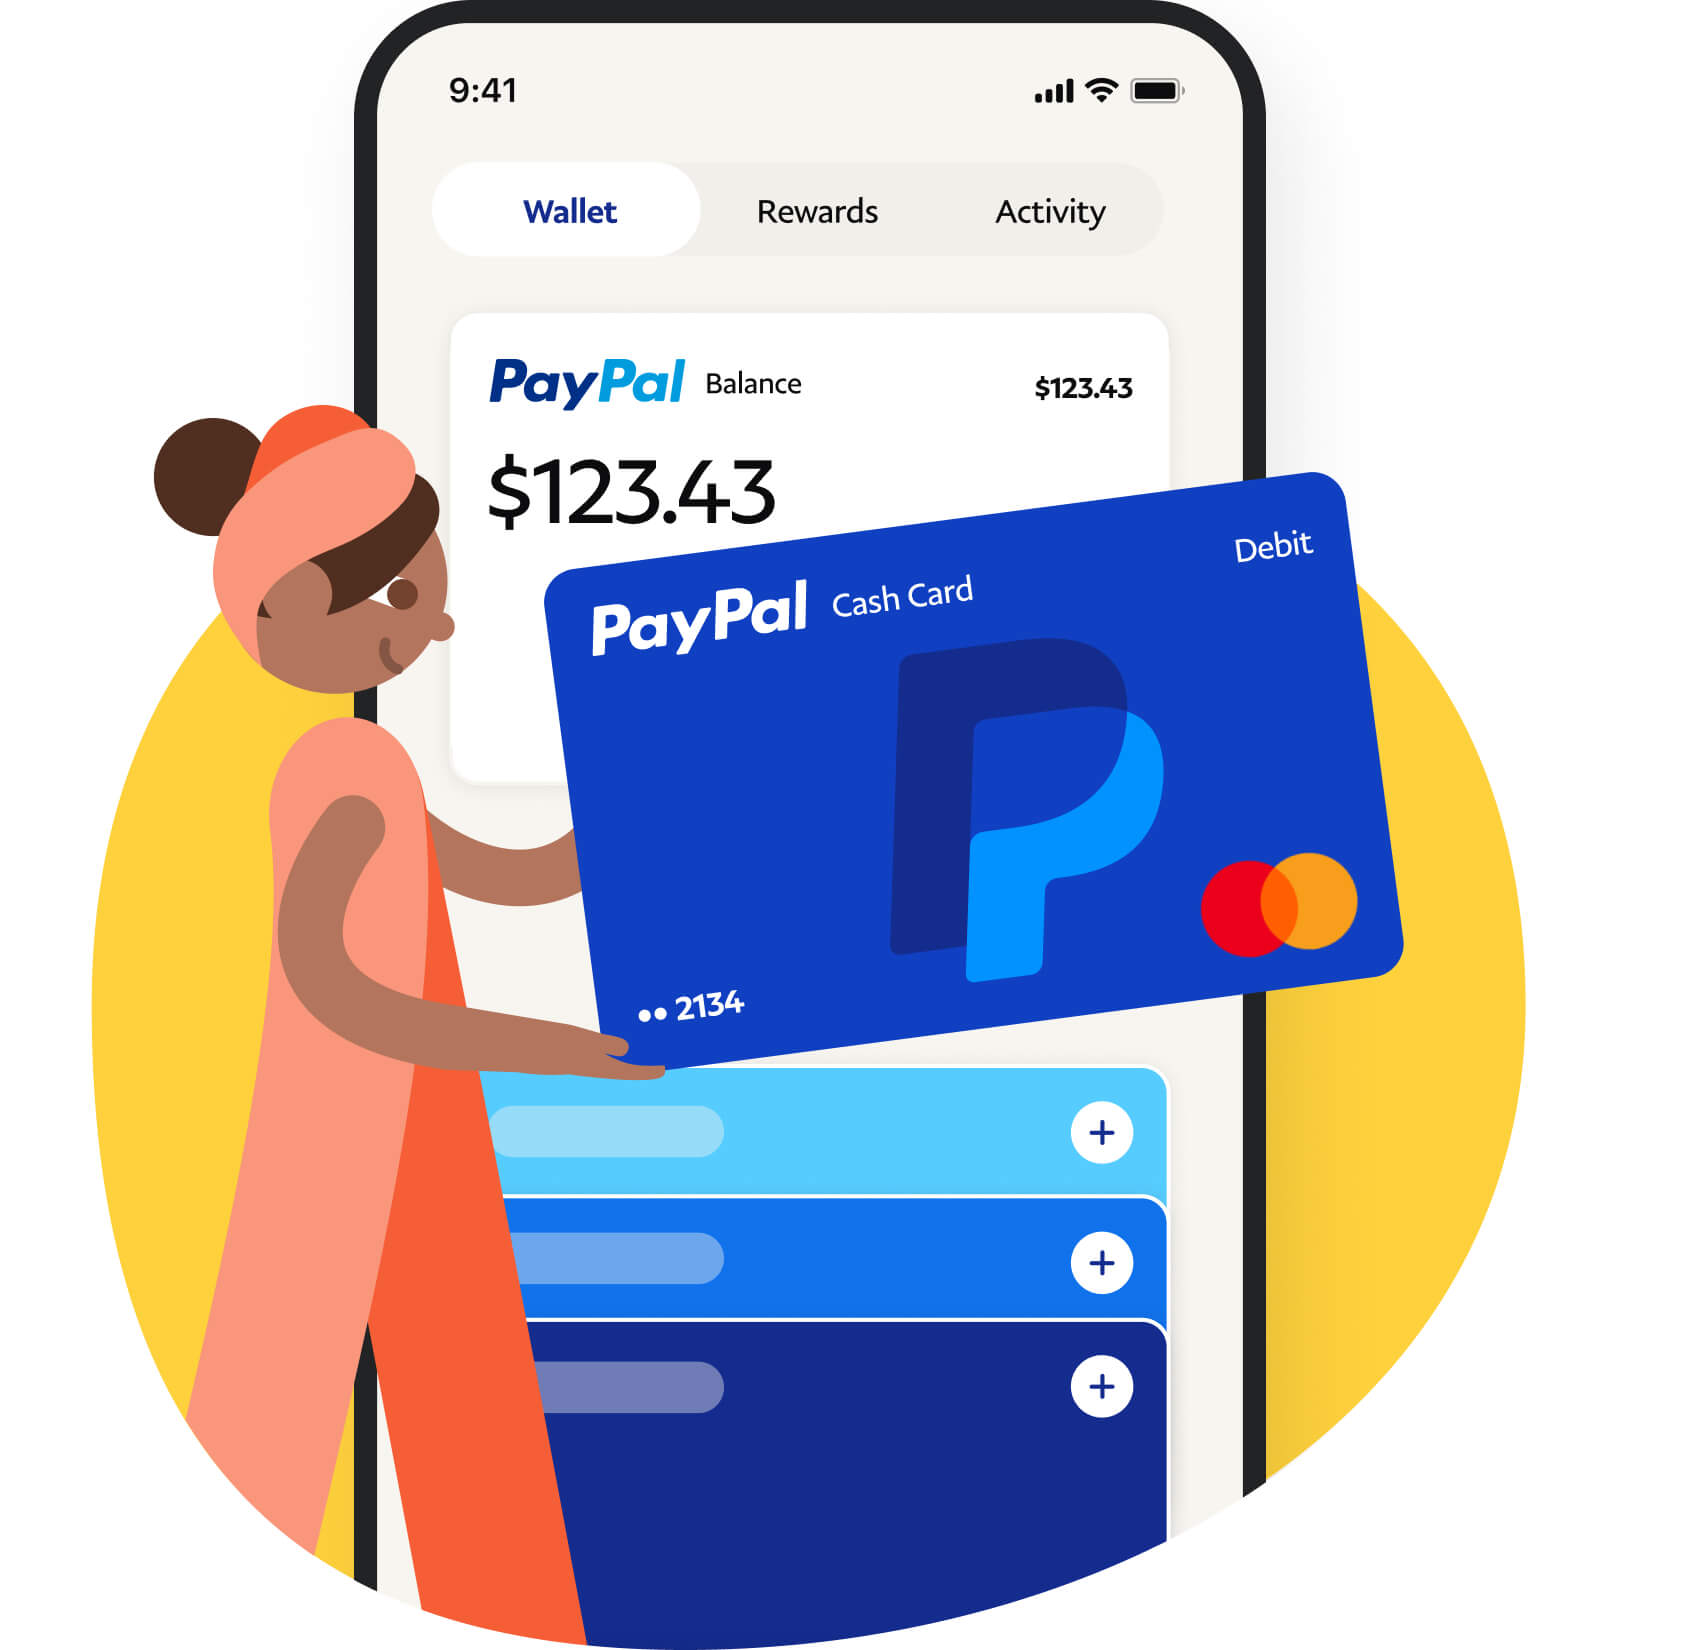 A lady holding paypal cash card